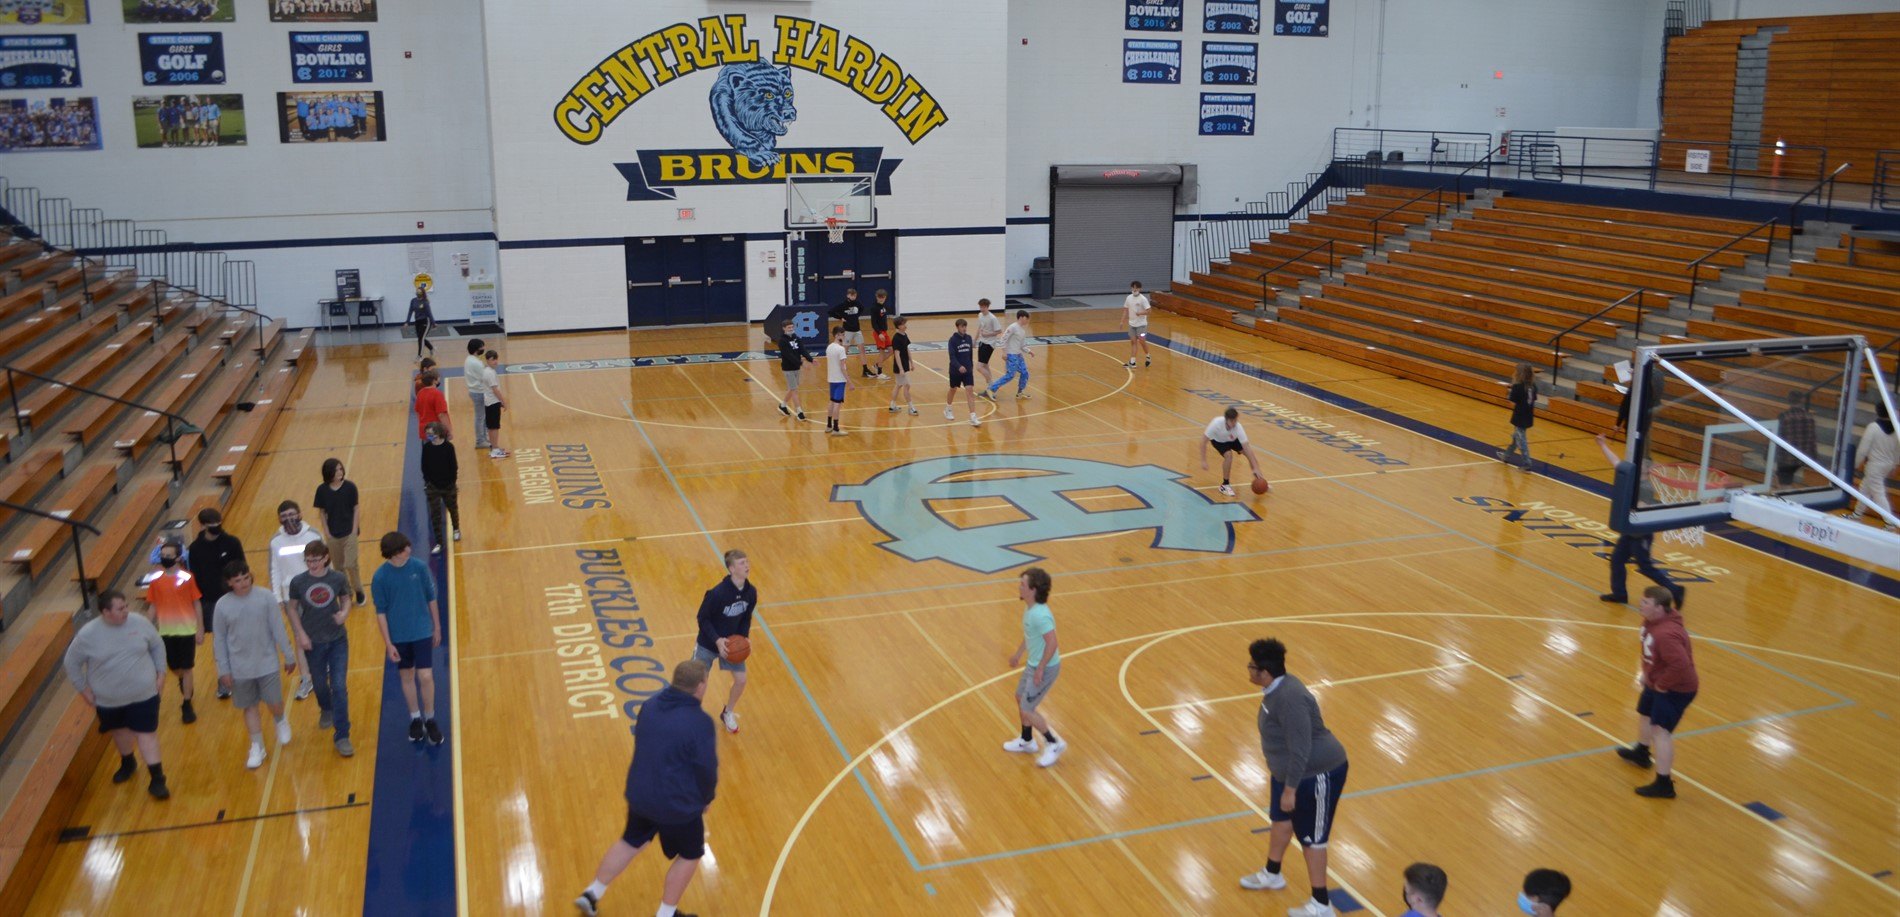 Student participate in PE class at Central Hardin